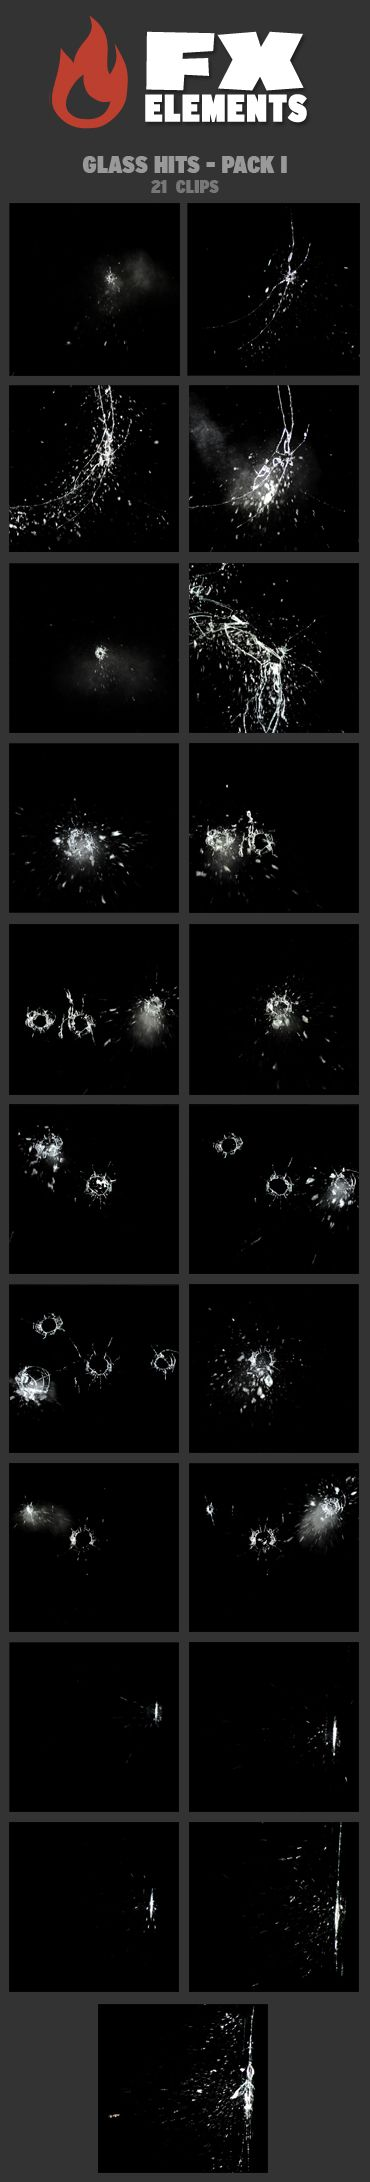 Glass Hits - Pack I includes 21 FX clips featuring bullets hitting a sheet of glass resulting in bullet holes and glass dust. Perfect for gunfights where windows or windshields are shot at by a gun / firearm. You can combine clips of the same series (for example: GlassHit-003a, GlassHit-003b and GlassHit-003c) to create successive bullet holes in the same window. • All clips include an Alpha channel • 21 clips horizontal 2K resolution (2048 × 1556) • ProRes 4444 Quicktime files